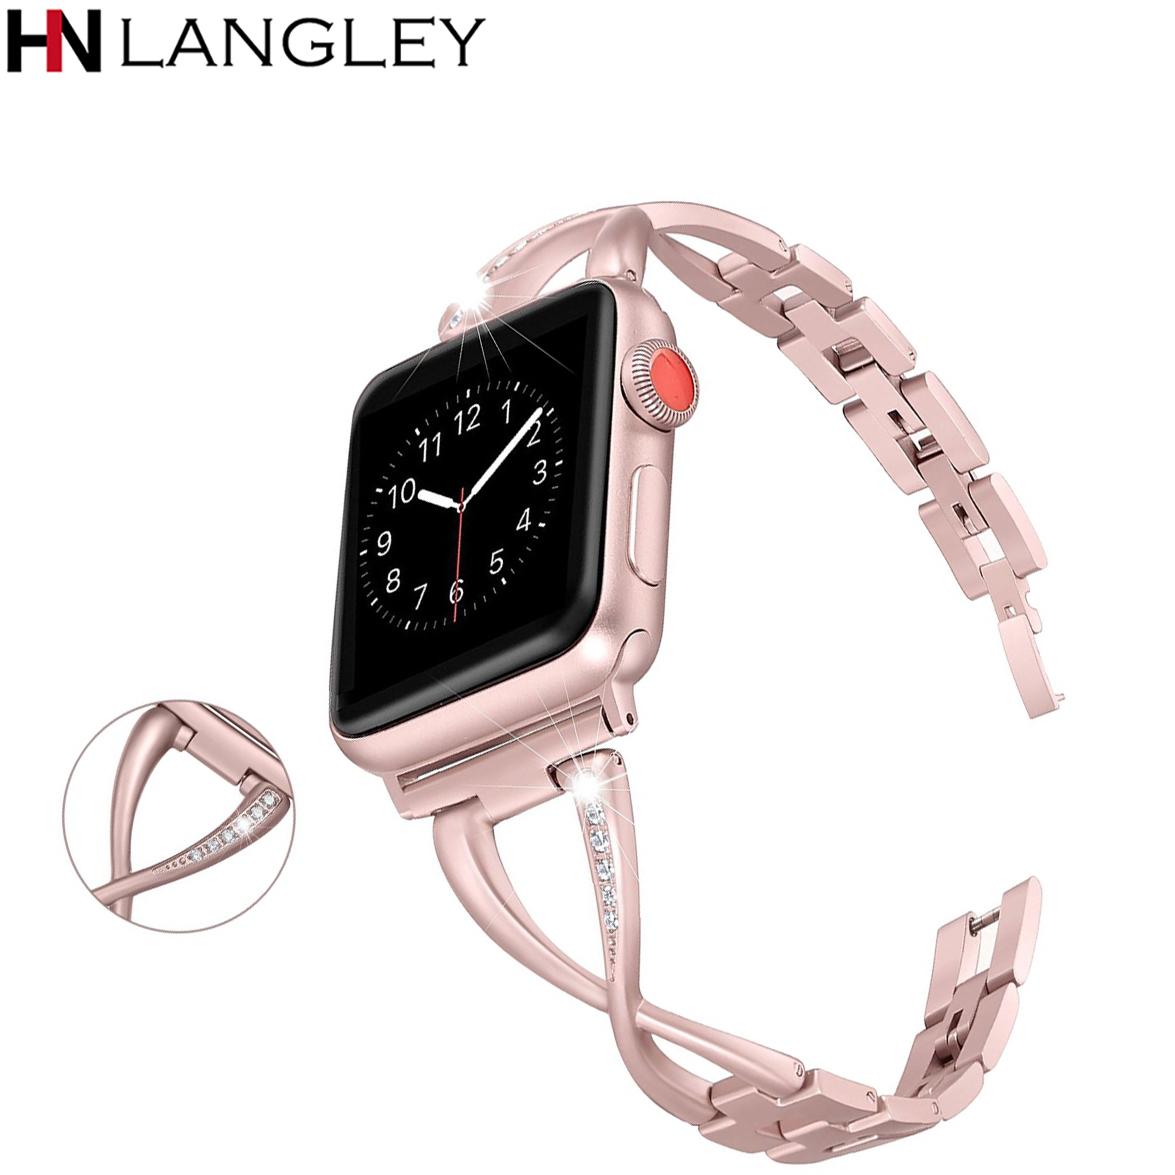 Luxury Rose Pink Watch band for Apple Watch Bands 38mm/42mm diamond Stainless Steel Strap for iwatch series 3 2 1 Bracelet 42mm 38mm for apple watch s3 series 3